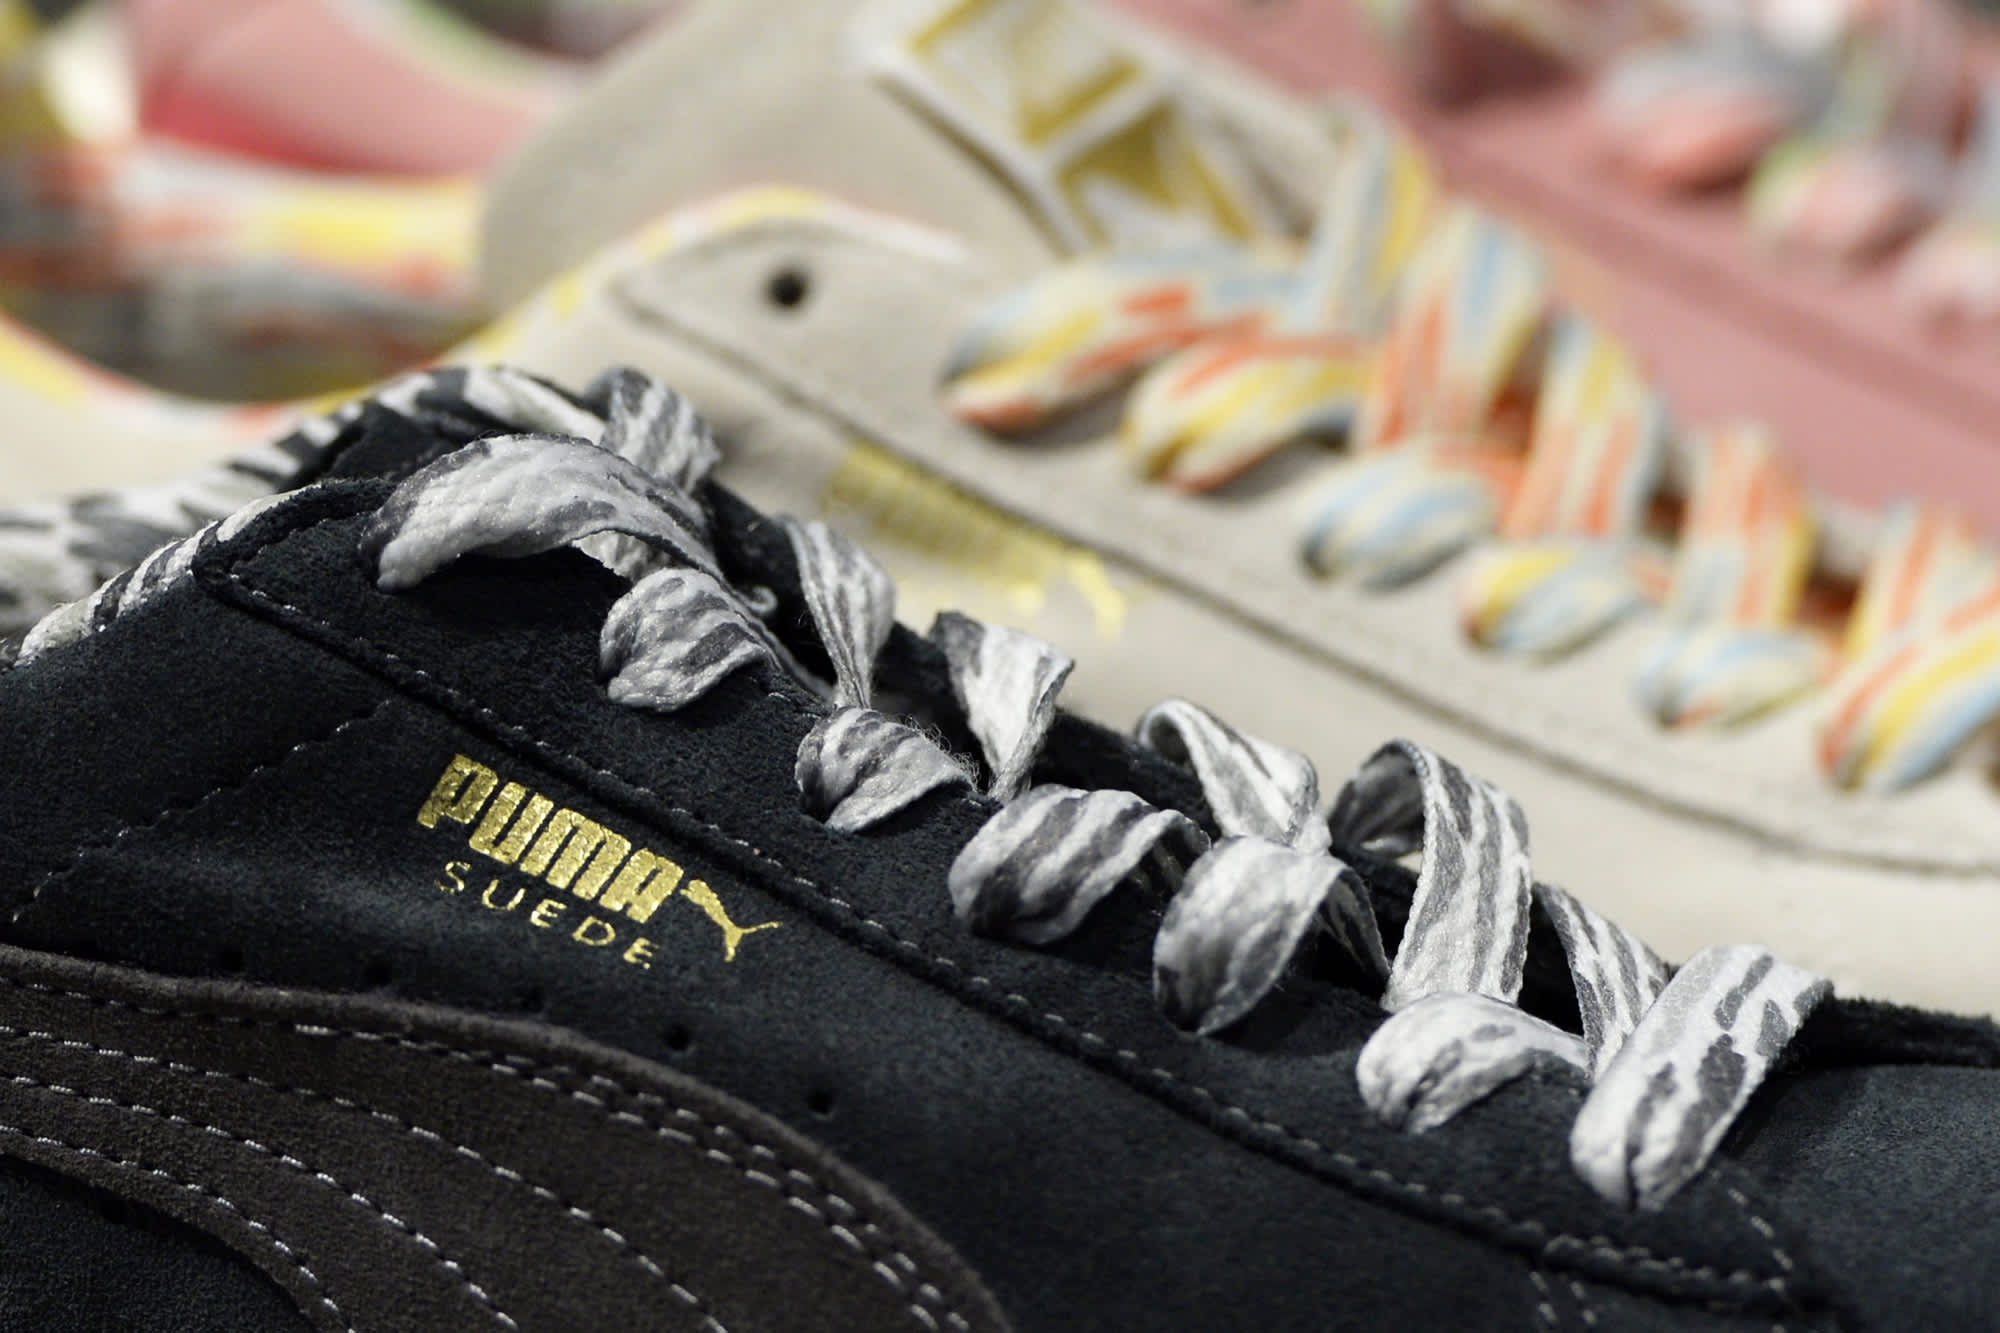 puma brand ladder In 2010, the brand released reebok zig, an athletic footwear technology and collection of shoes include zigzag foam soles designed to push athletes forward.